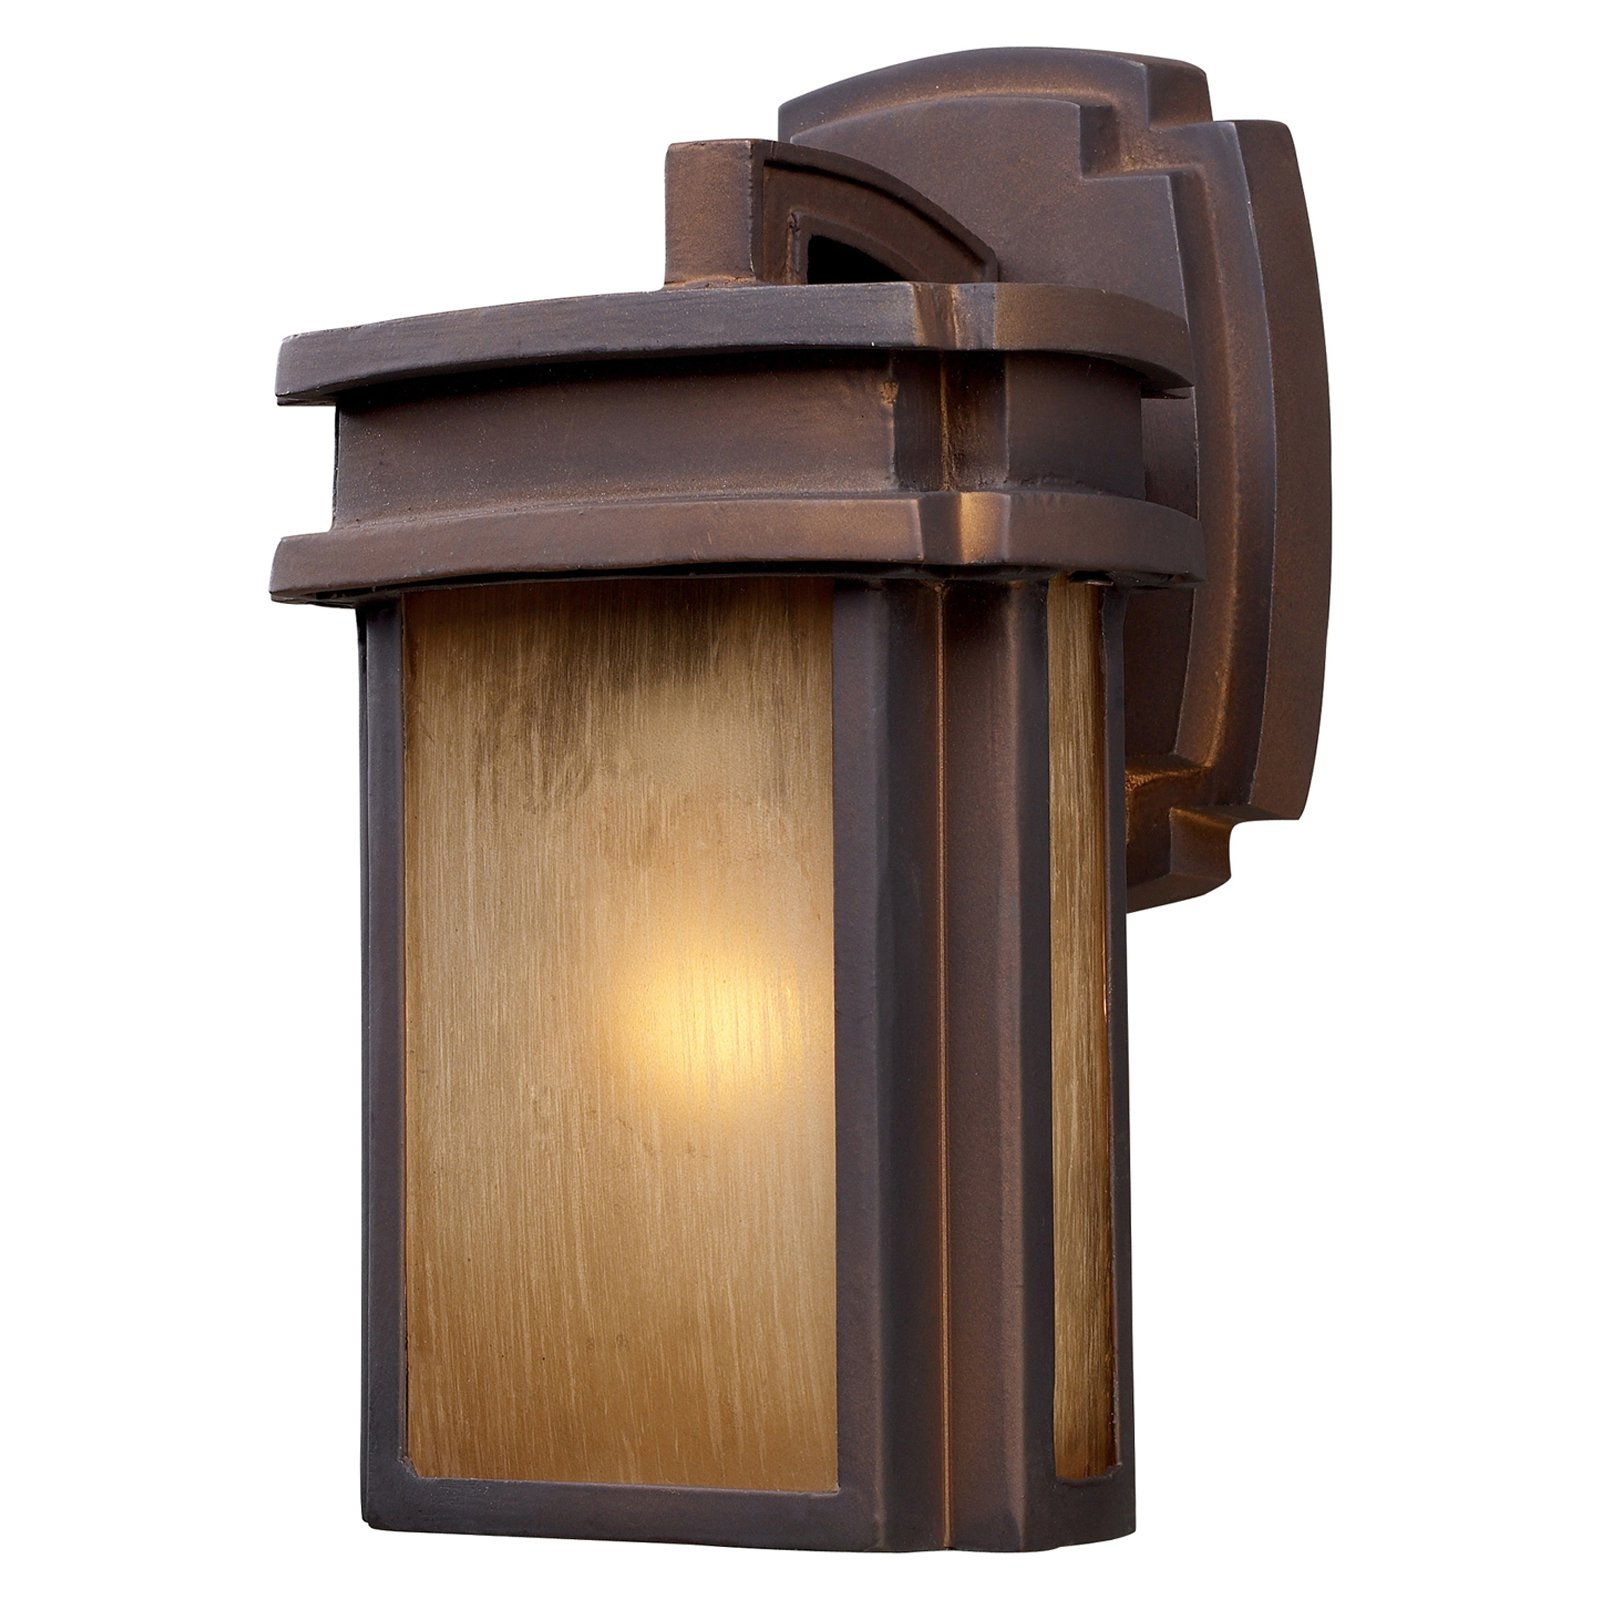 ELK Lighting Sedona 42146 1 1-Light Outdoor Wall Sconce by Elk Lighting